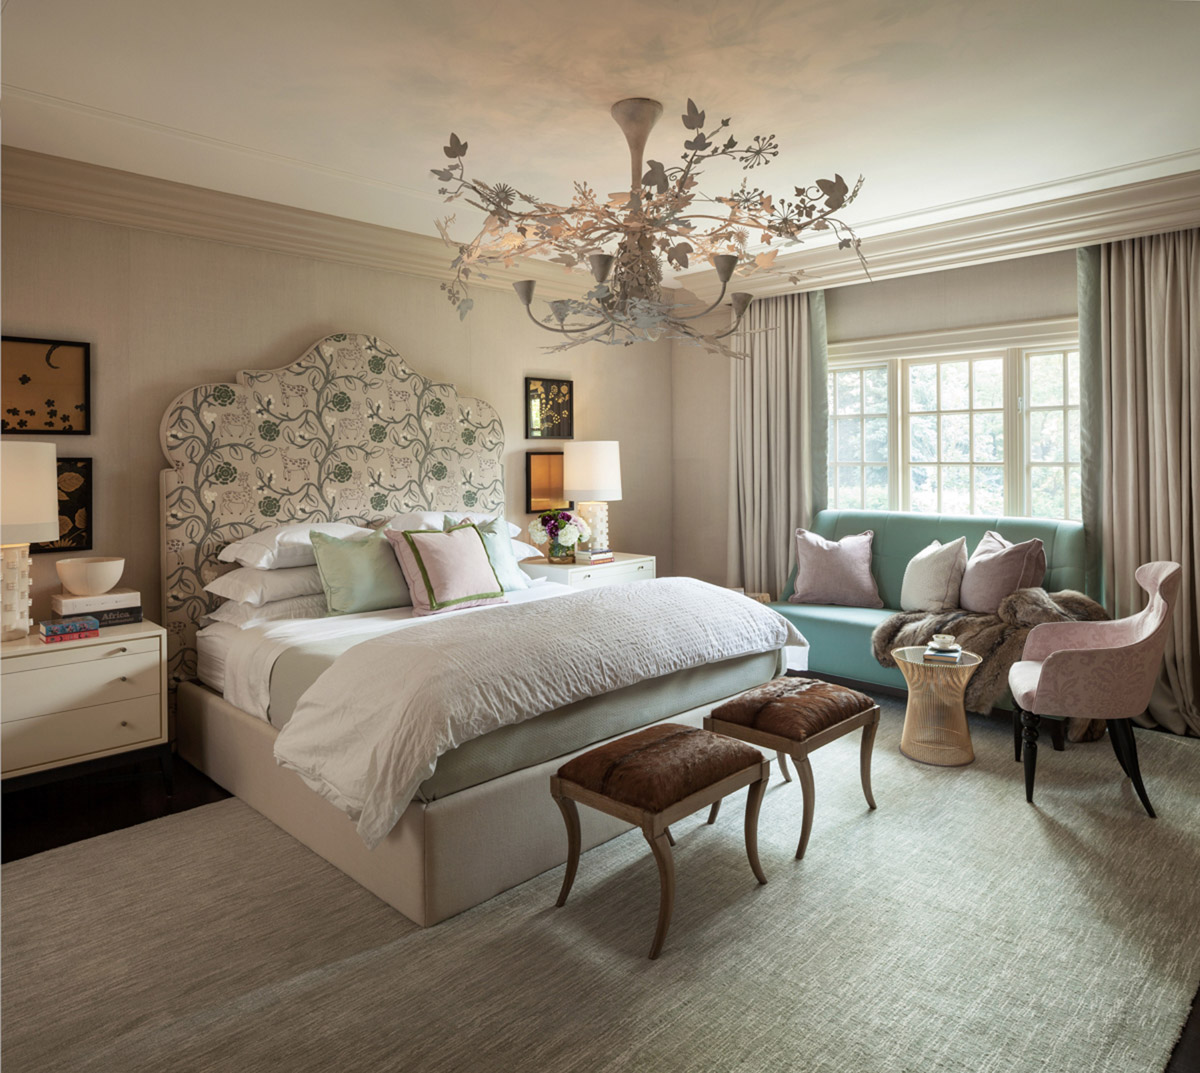 Residential design by Powell & Bonnell with bedroom interior for the Well Hued House